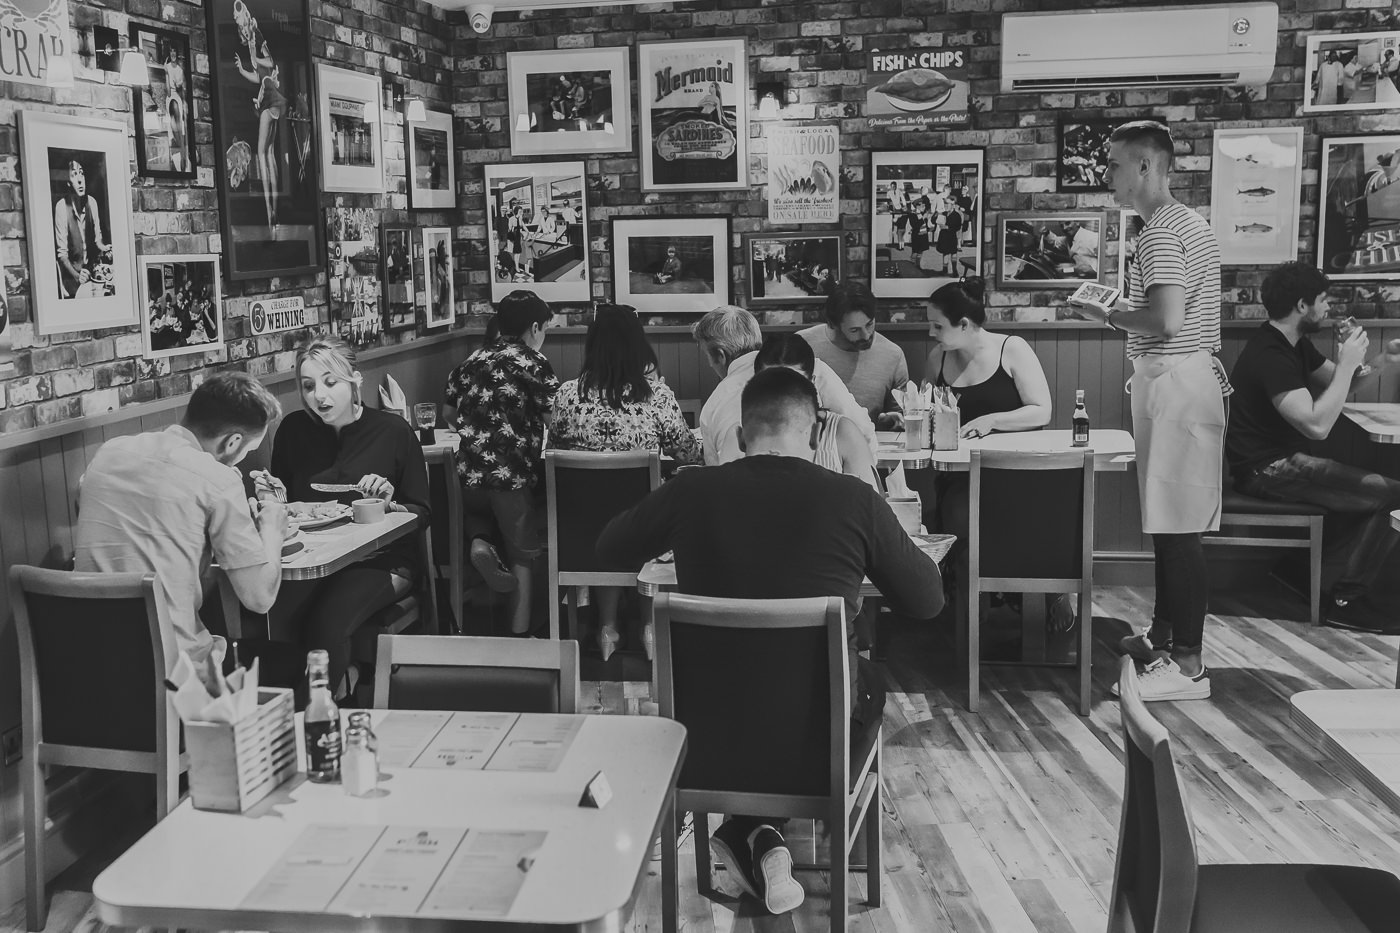 Black and white image of people sitting in a restaurant